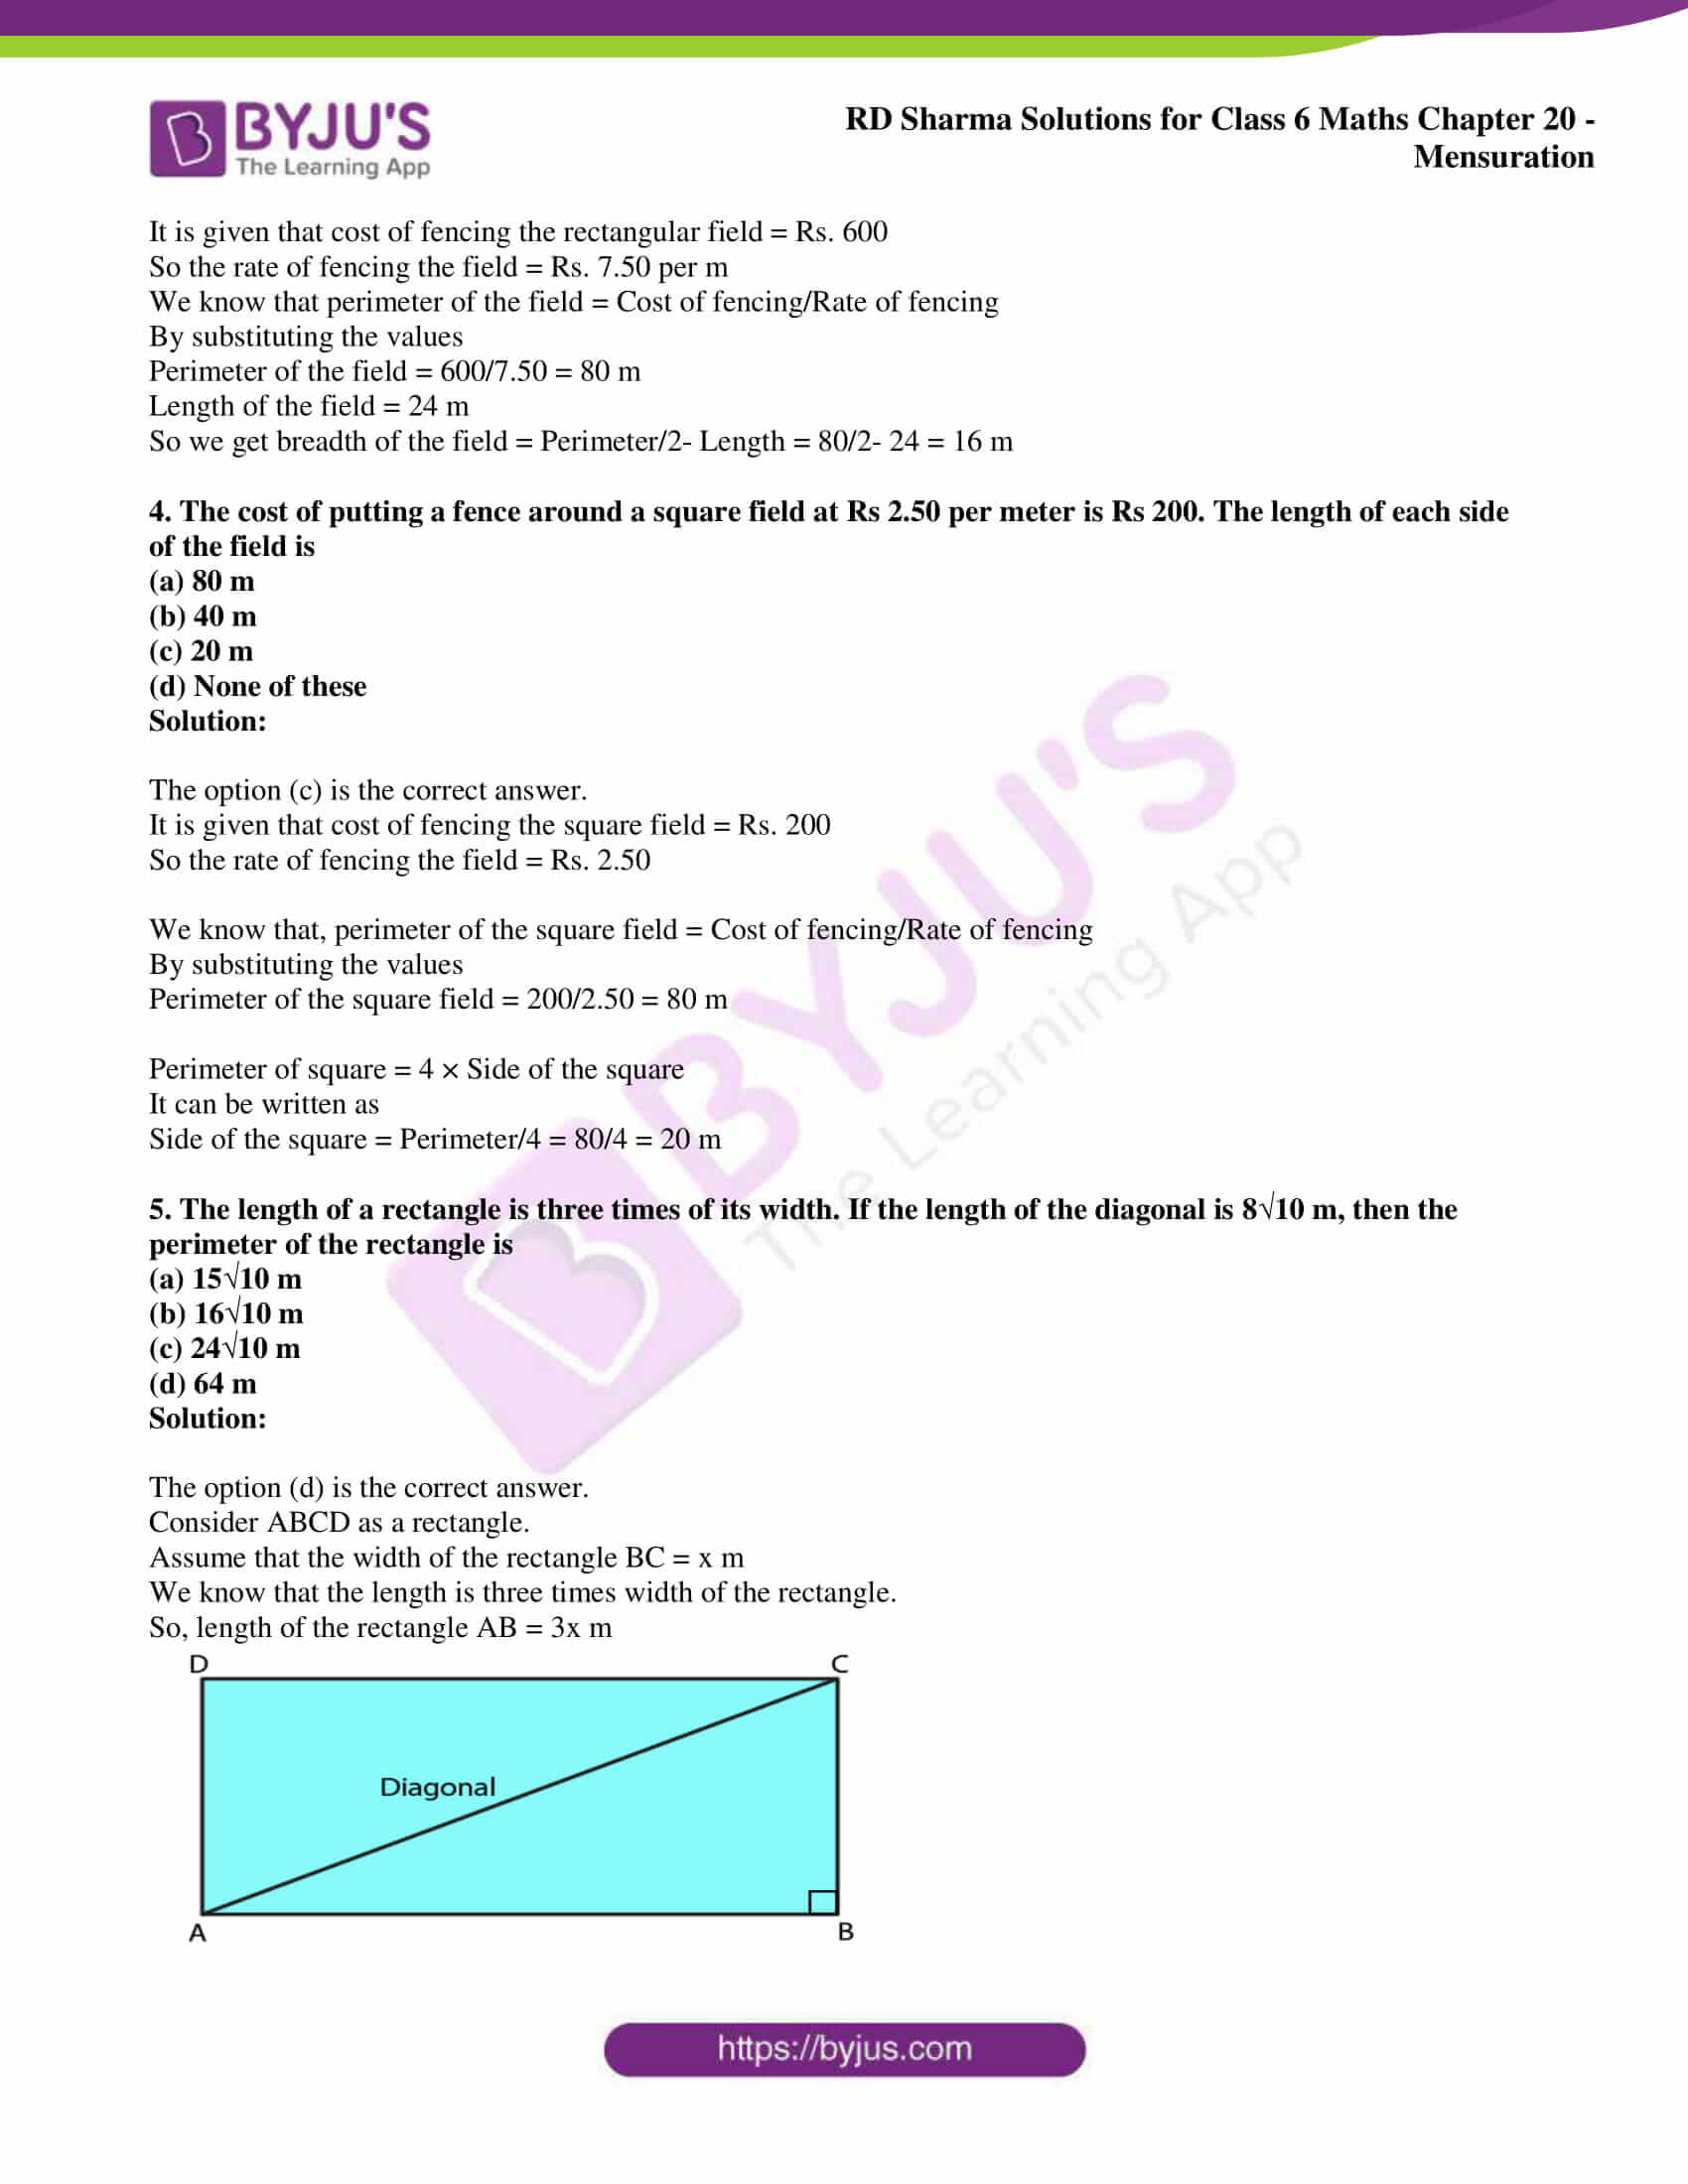 rd sharma solutions nov2020 class 6 maths chapter 20 exercise obj 2